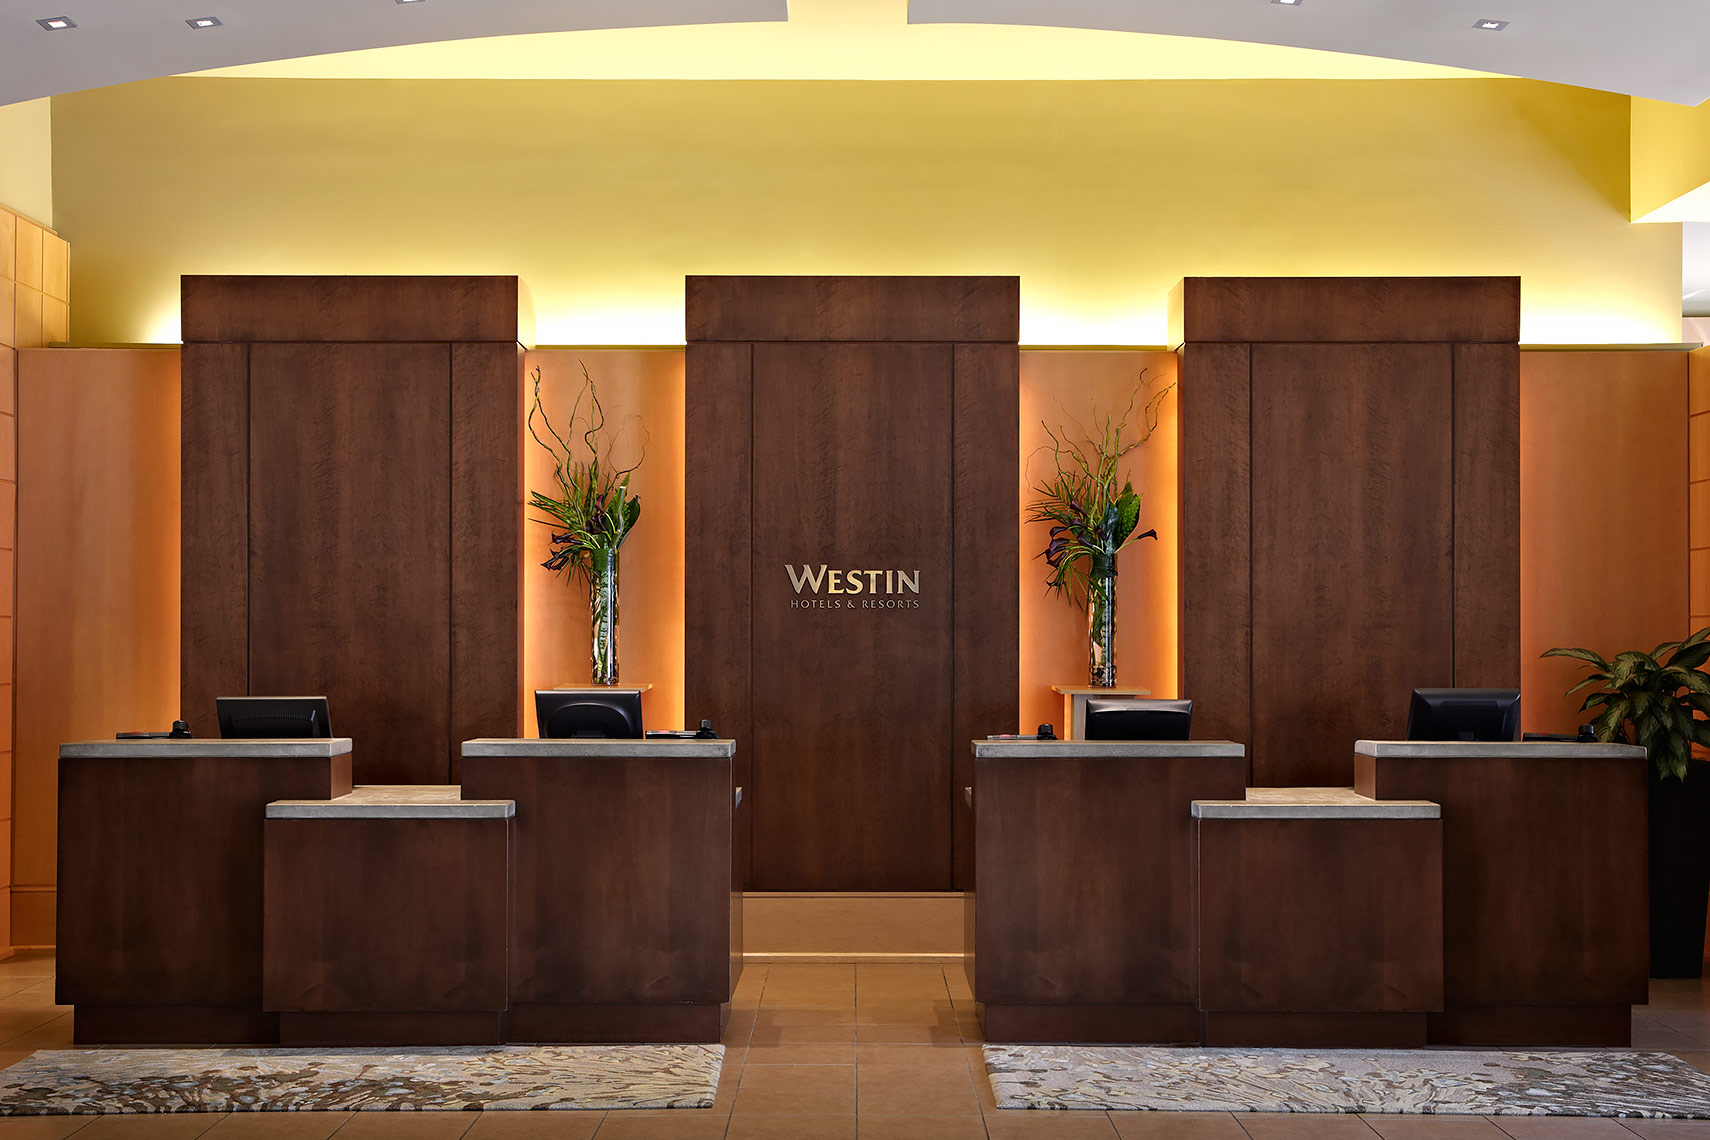 ARCHITECTURE-Retail61-H-Bloom-Westin-Hotel